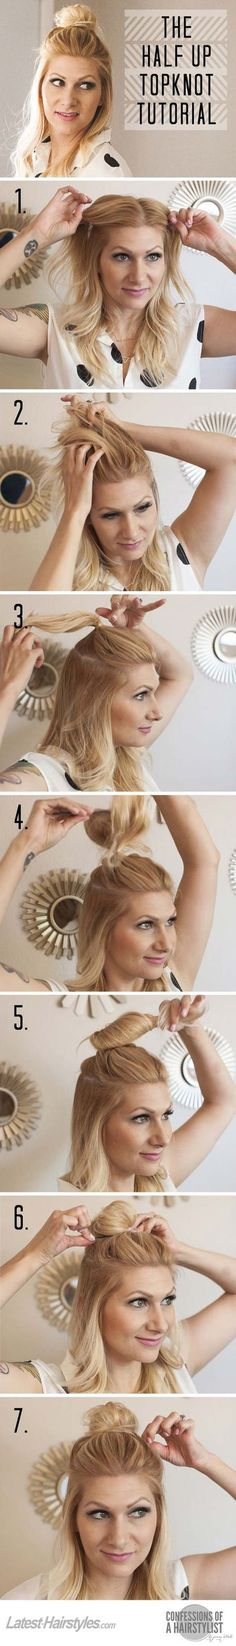 Cool and Easy DIY Hairstyles - The Half Up Top Knot - Quick and Easy Ideas for Back to School Styles for Medium, Short and Long Hair - Fun Tips and Best Step by Step Tutorials for Teens, Prom, Weddings, Special Occasions and Work.